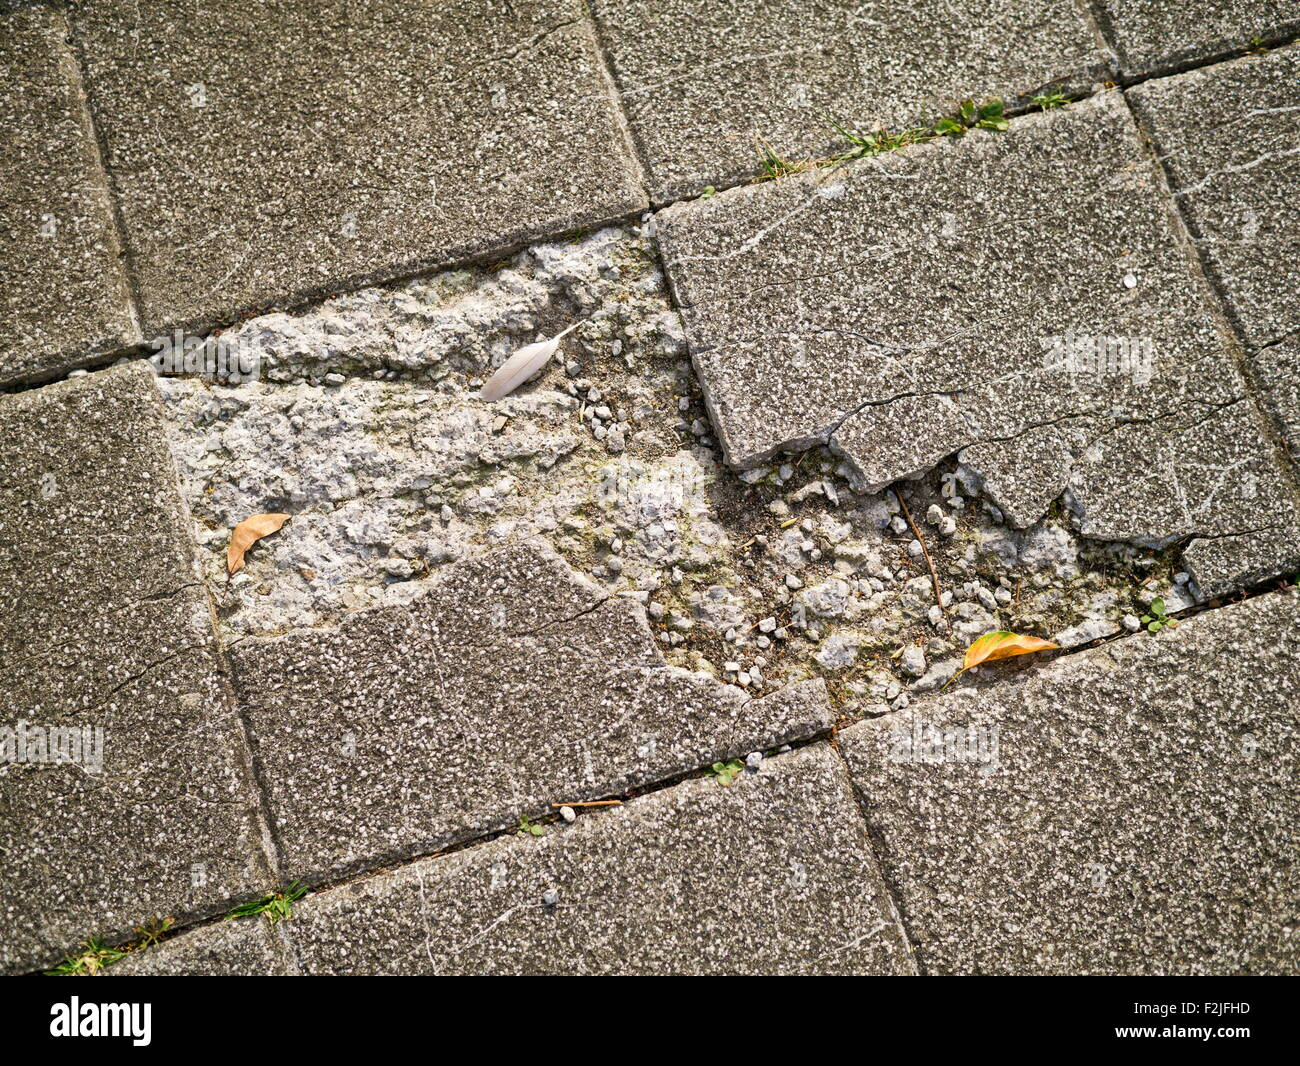 Old And Broken Asbestos Floor Tiles Stock Photo 87688537 Alamy